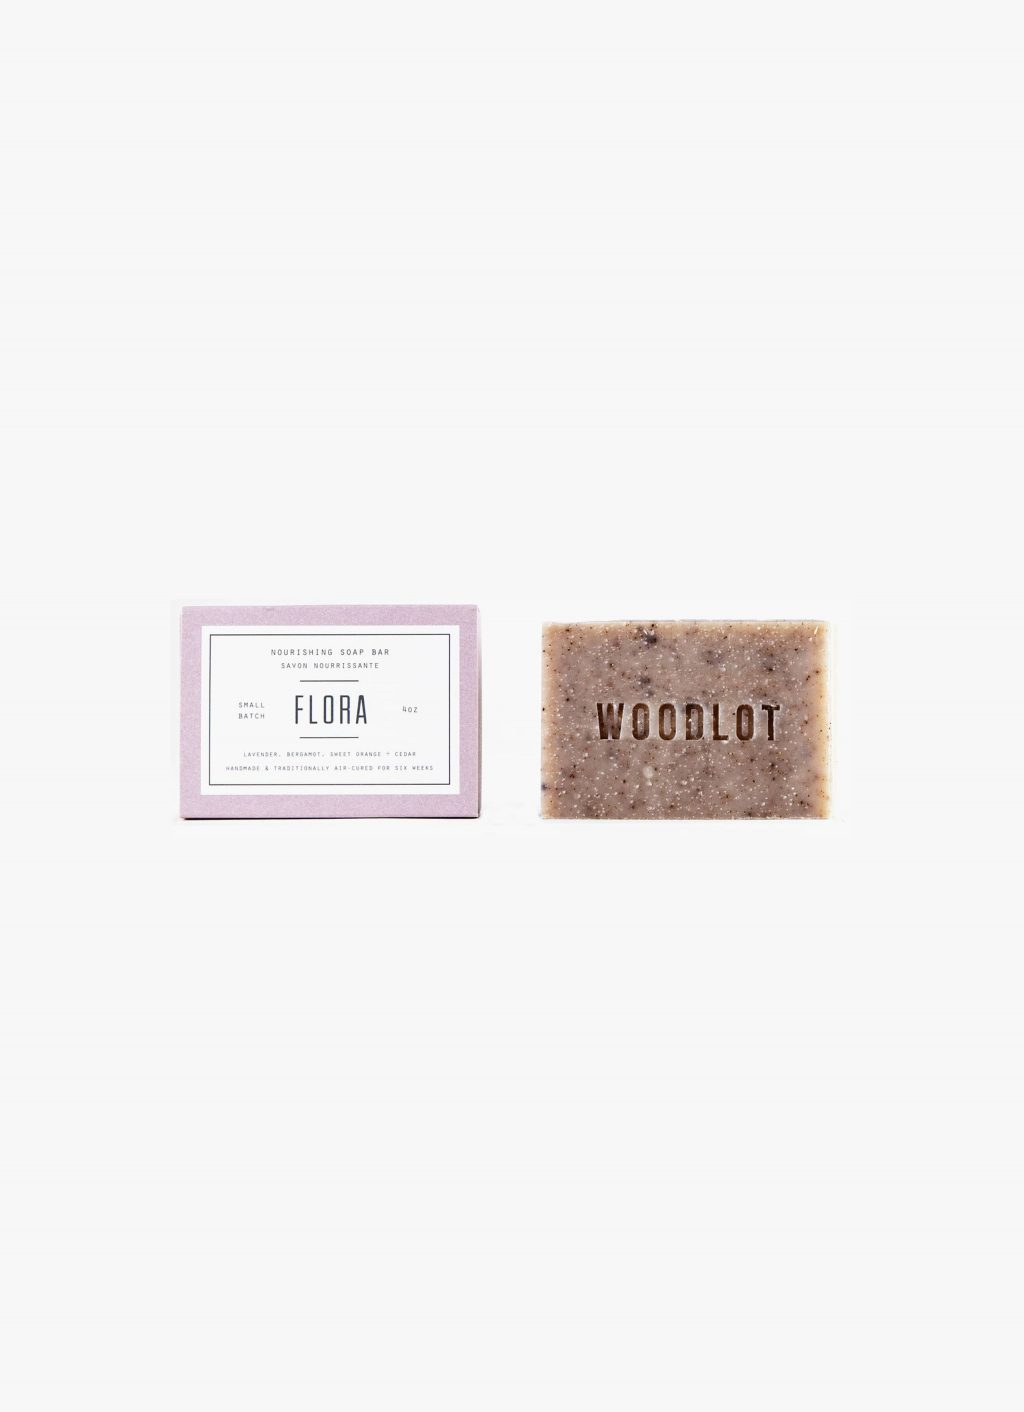 Woodlot - 4OZ- Soap Bar - Flora